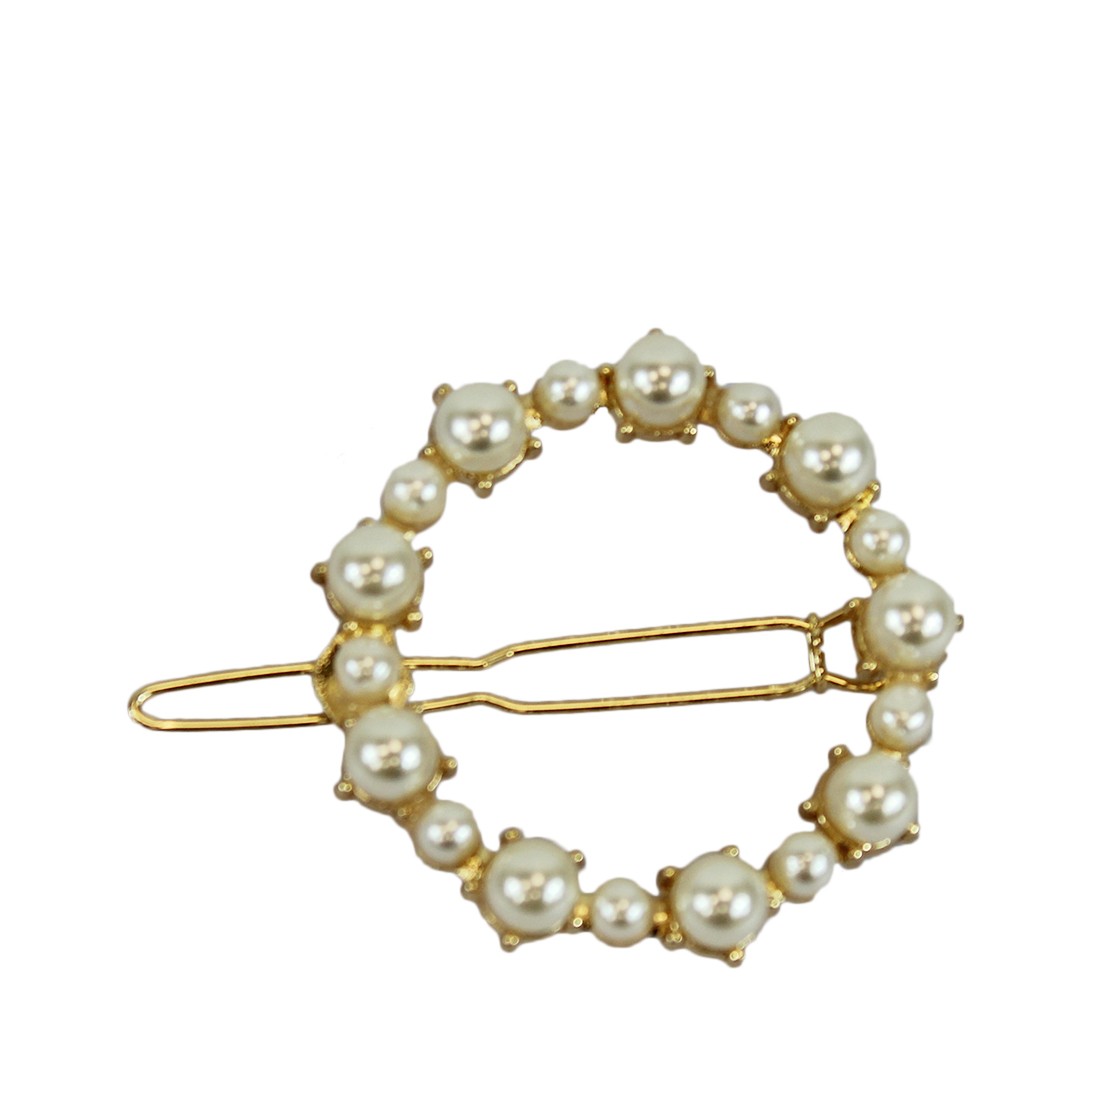 * Circle style with pearls